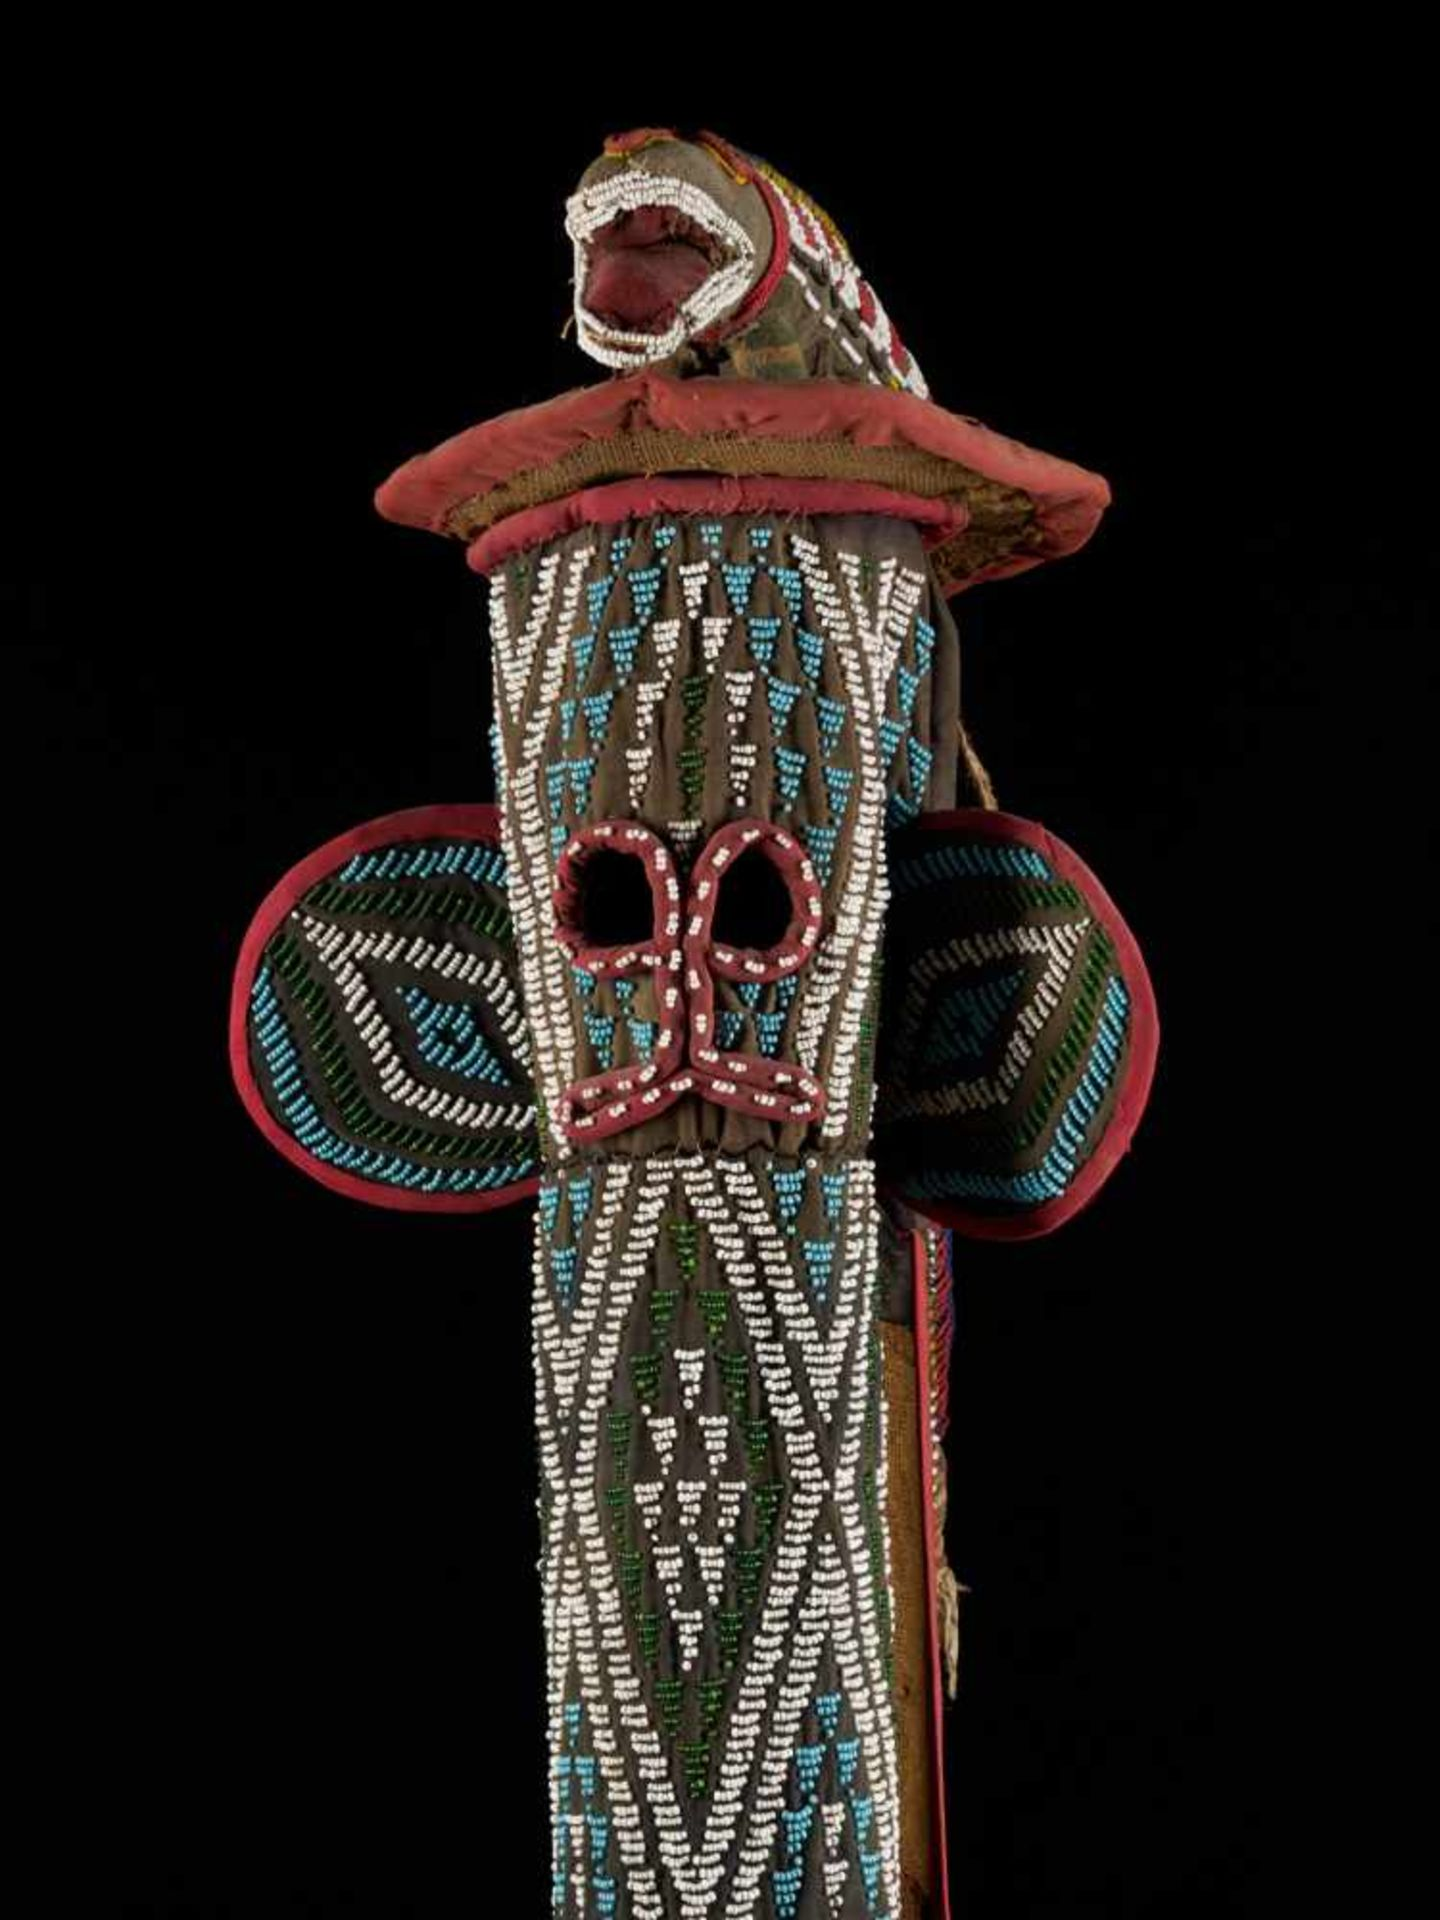 Beaded Kuosi Elephant Mask Topped With Leopard Figure - Tribal ArtThis elephant mask is - Bild 5 aus 15